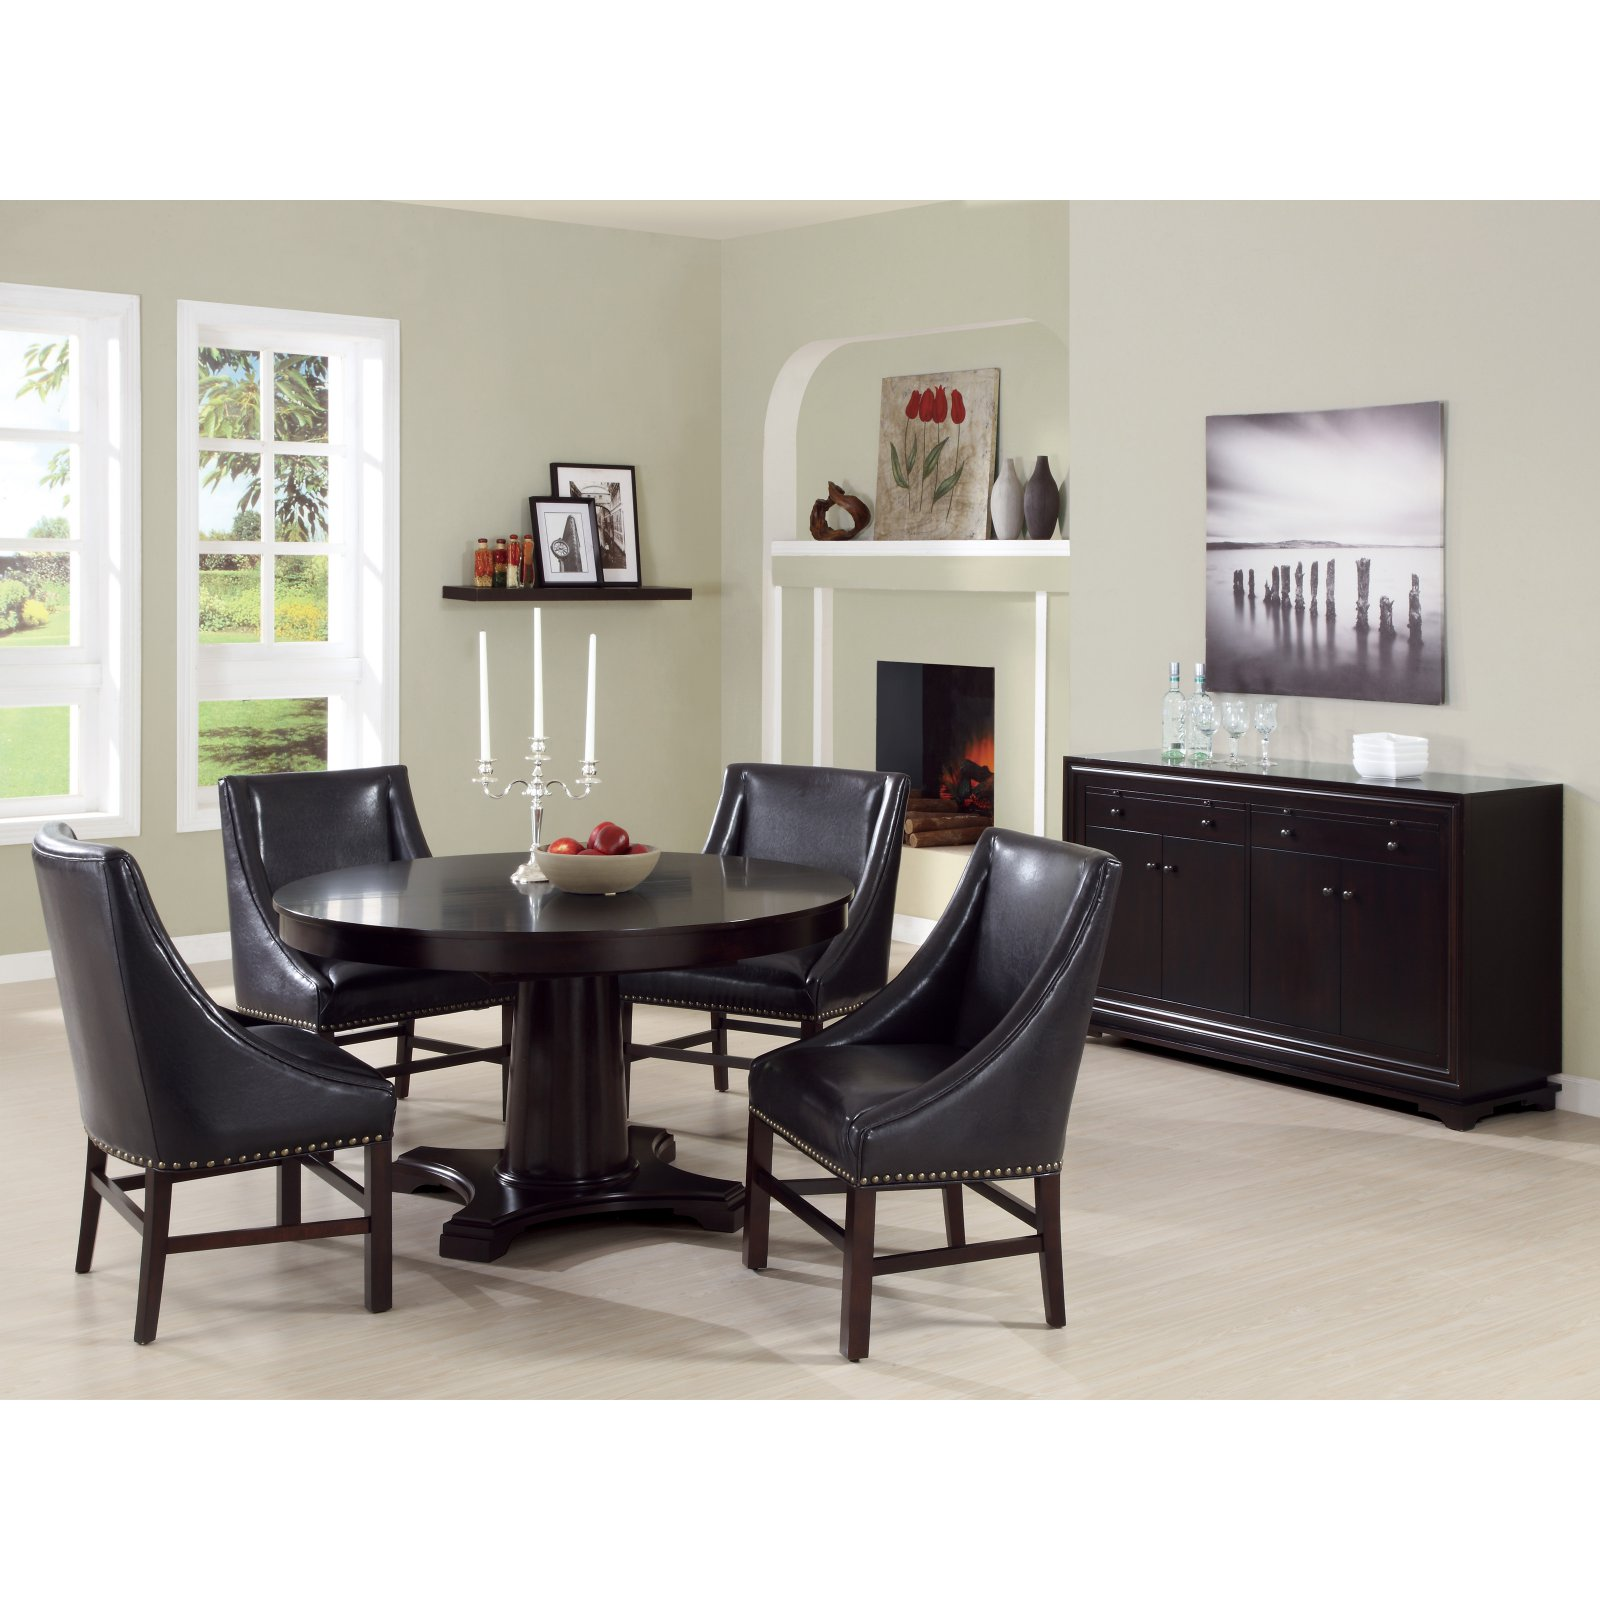 "MONARCH - DINING CHAIR - 2PCS / 38""H / DARK BROWN BONDED LEATHER"